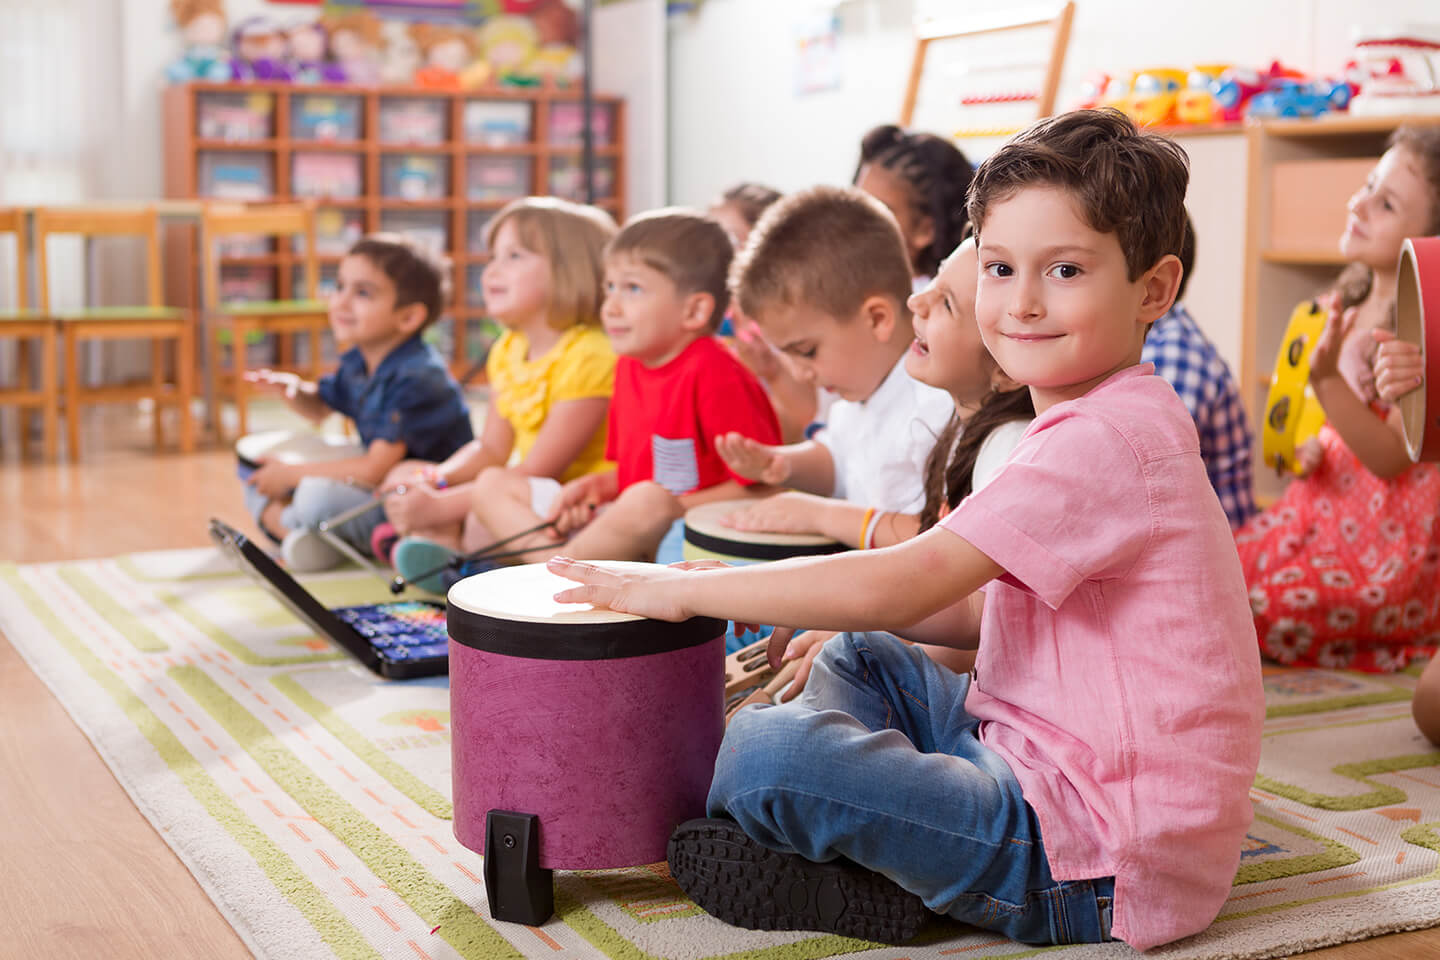 Young boy sitting on the floor patting a drum with other kids playing instruments at a childcare center in Parramatta, Blacktown Sydney